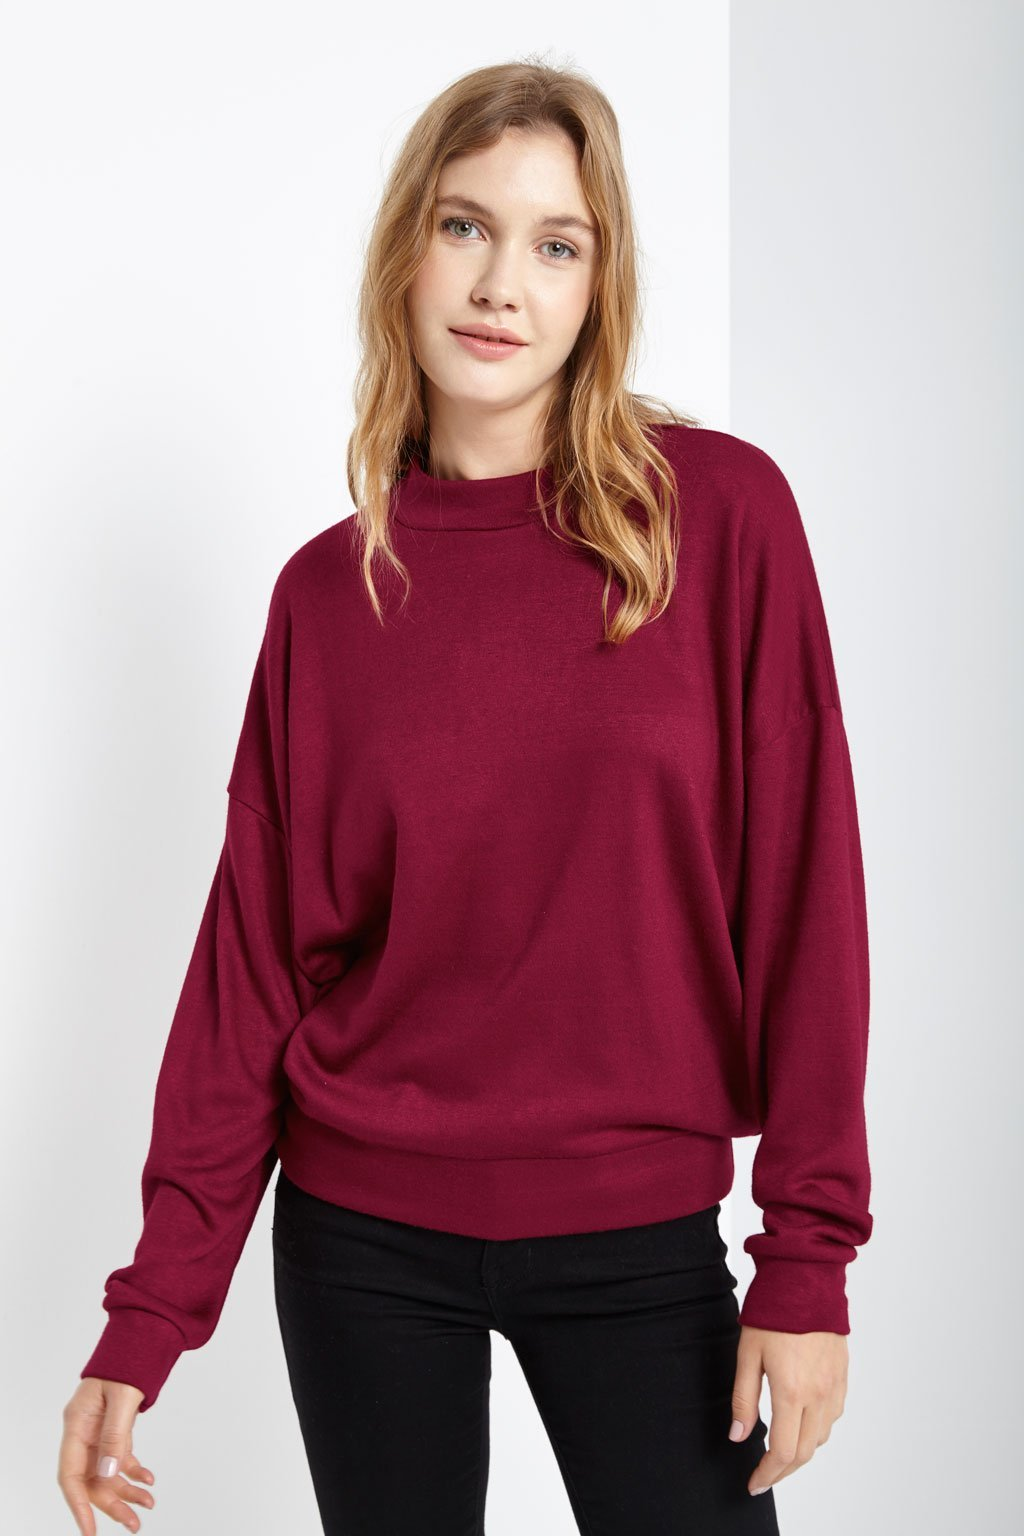 Poshsquare Tops Nica Mock Neck Long Sleeve Sweater Top